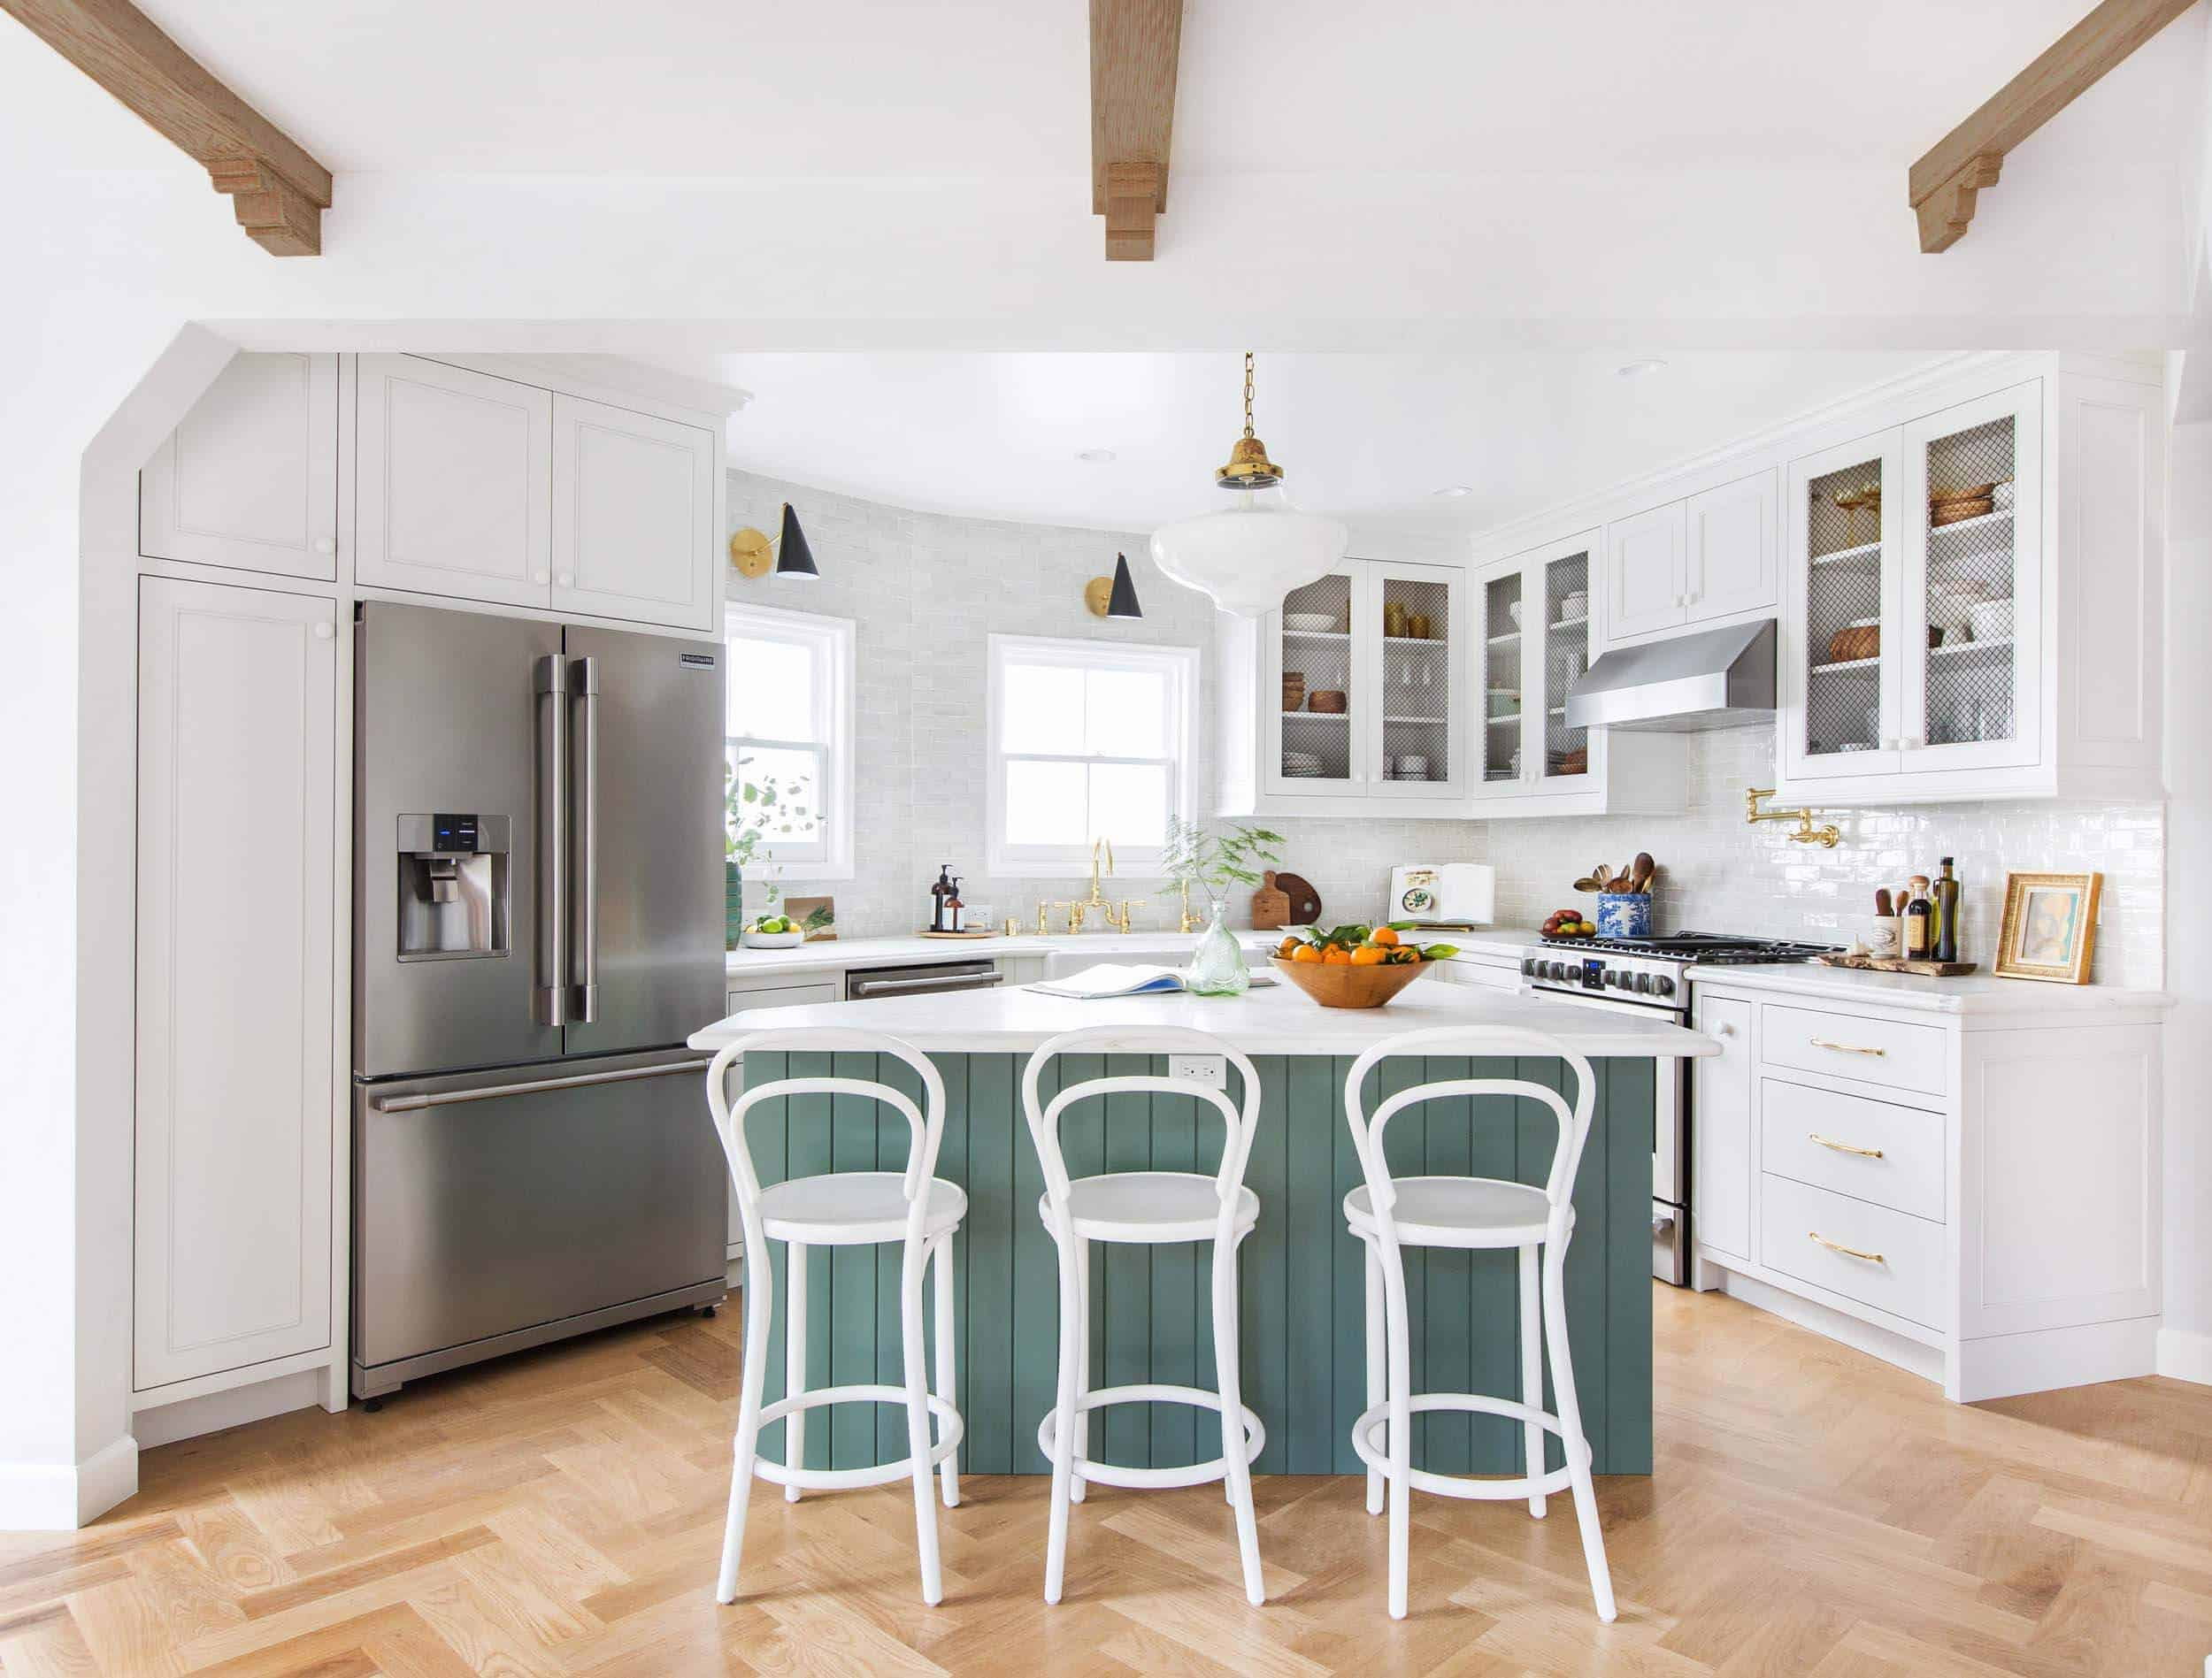 emily-henderson_frigidaire_kitchen-reveal_waverly_english-modern_edited-beams_12